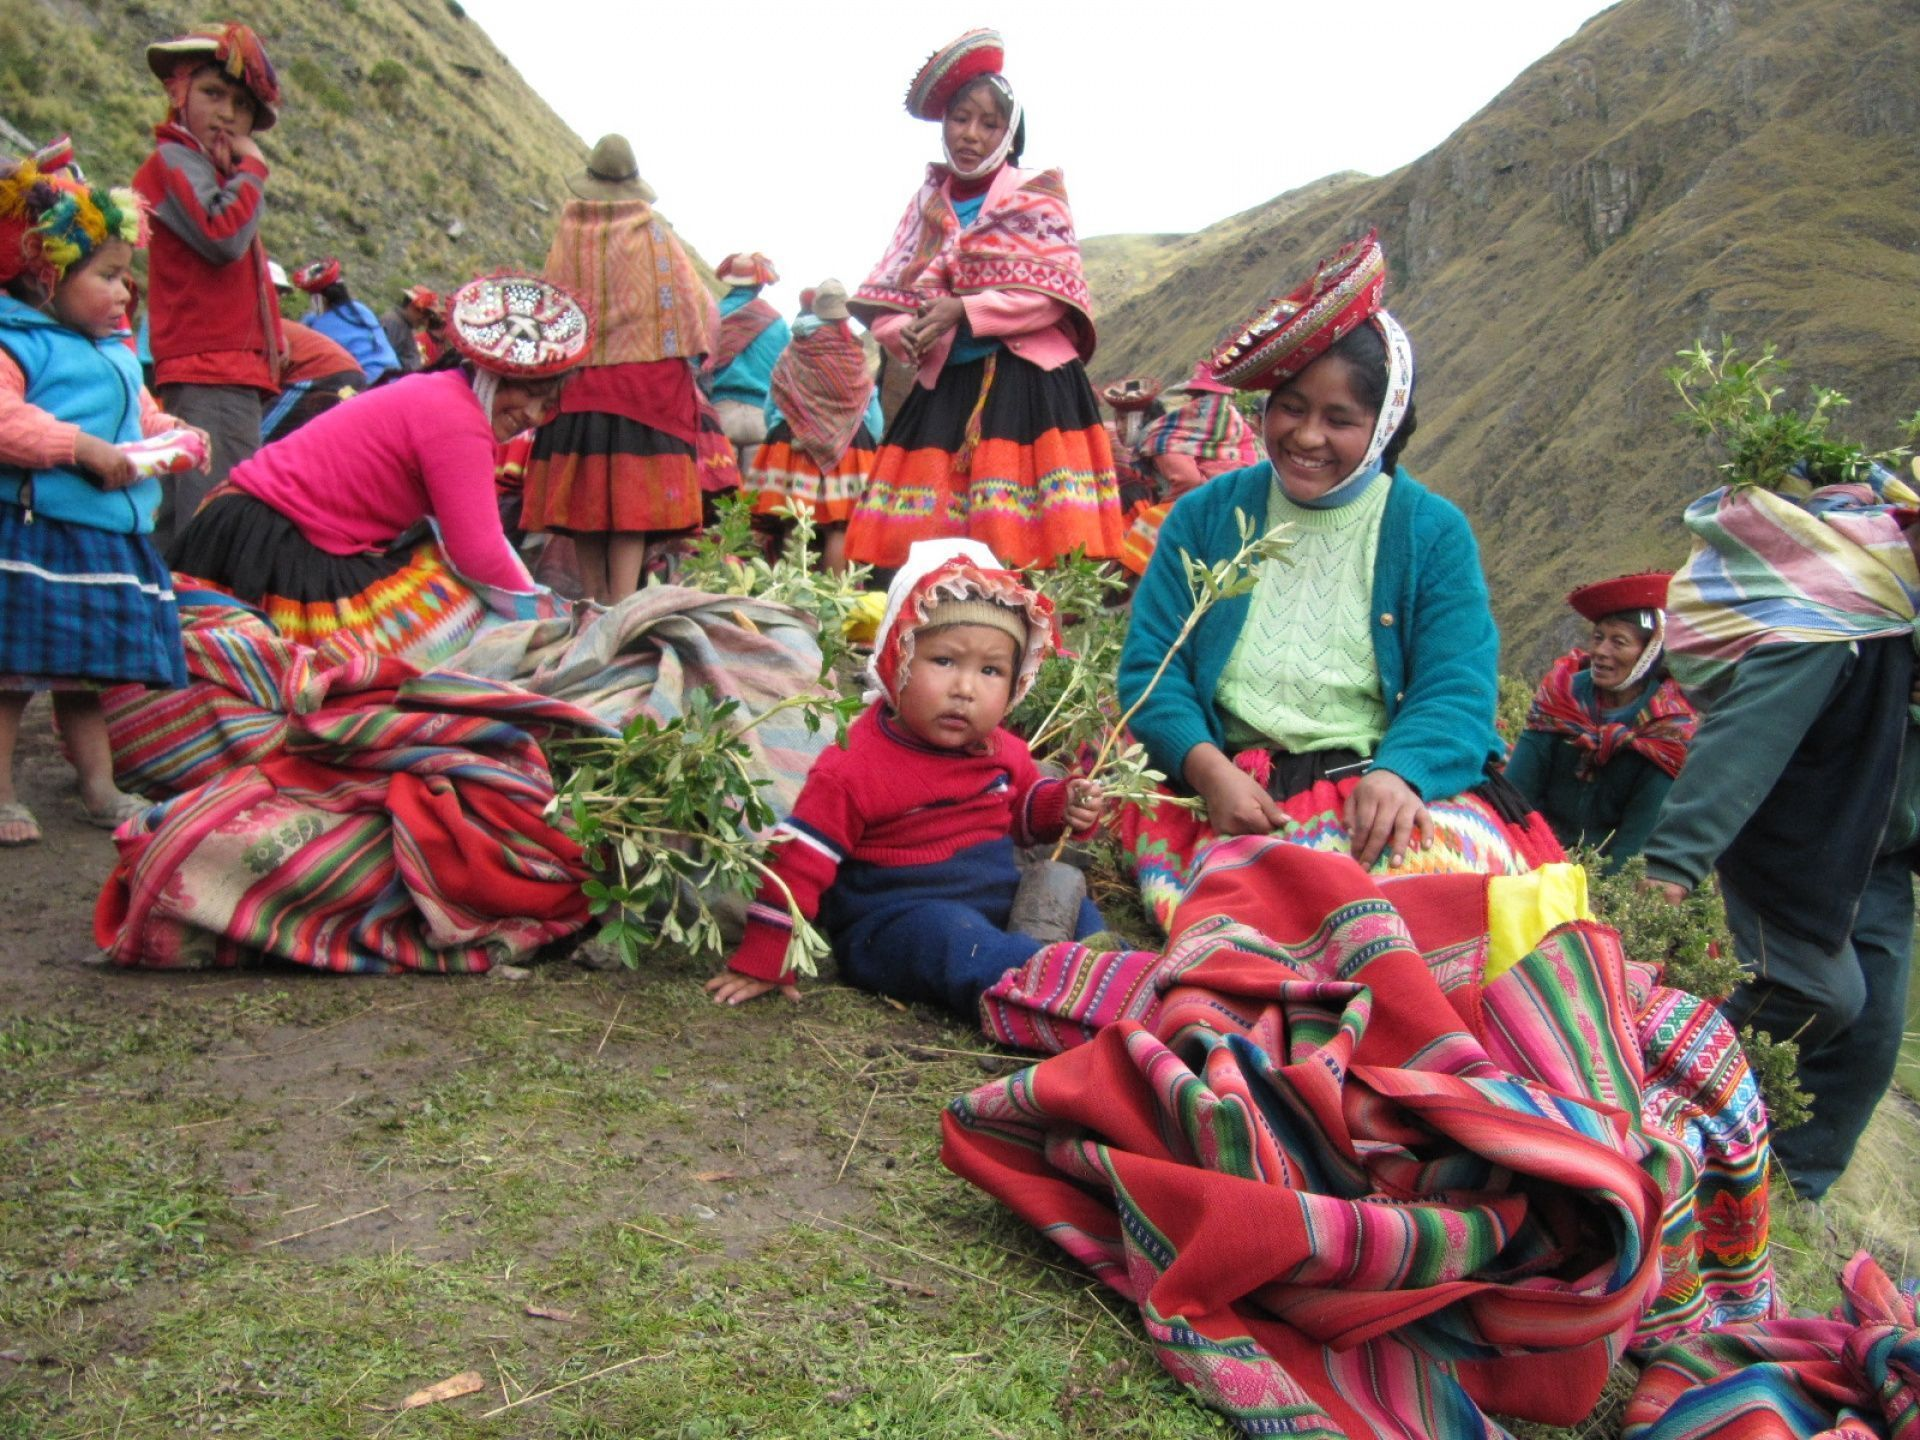 We've helped to plant 67,000 trees in Peru